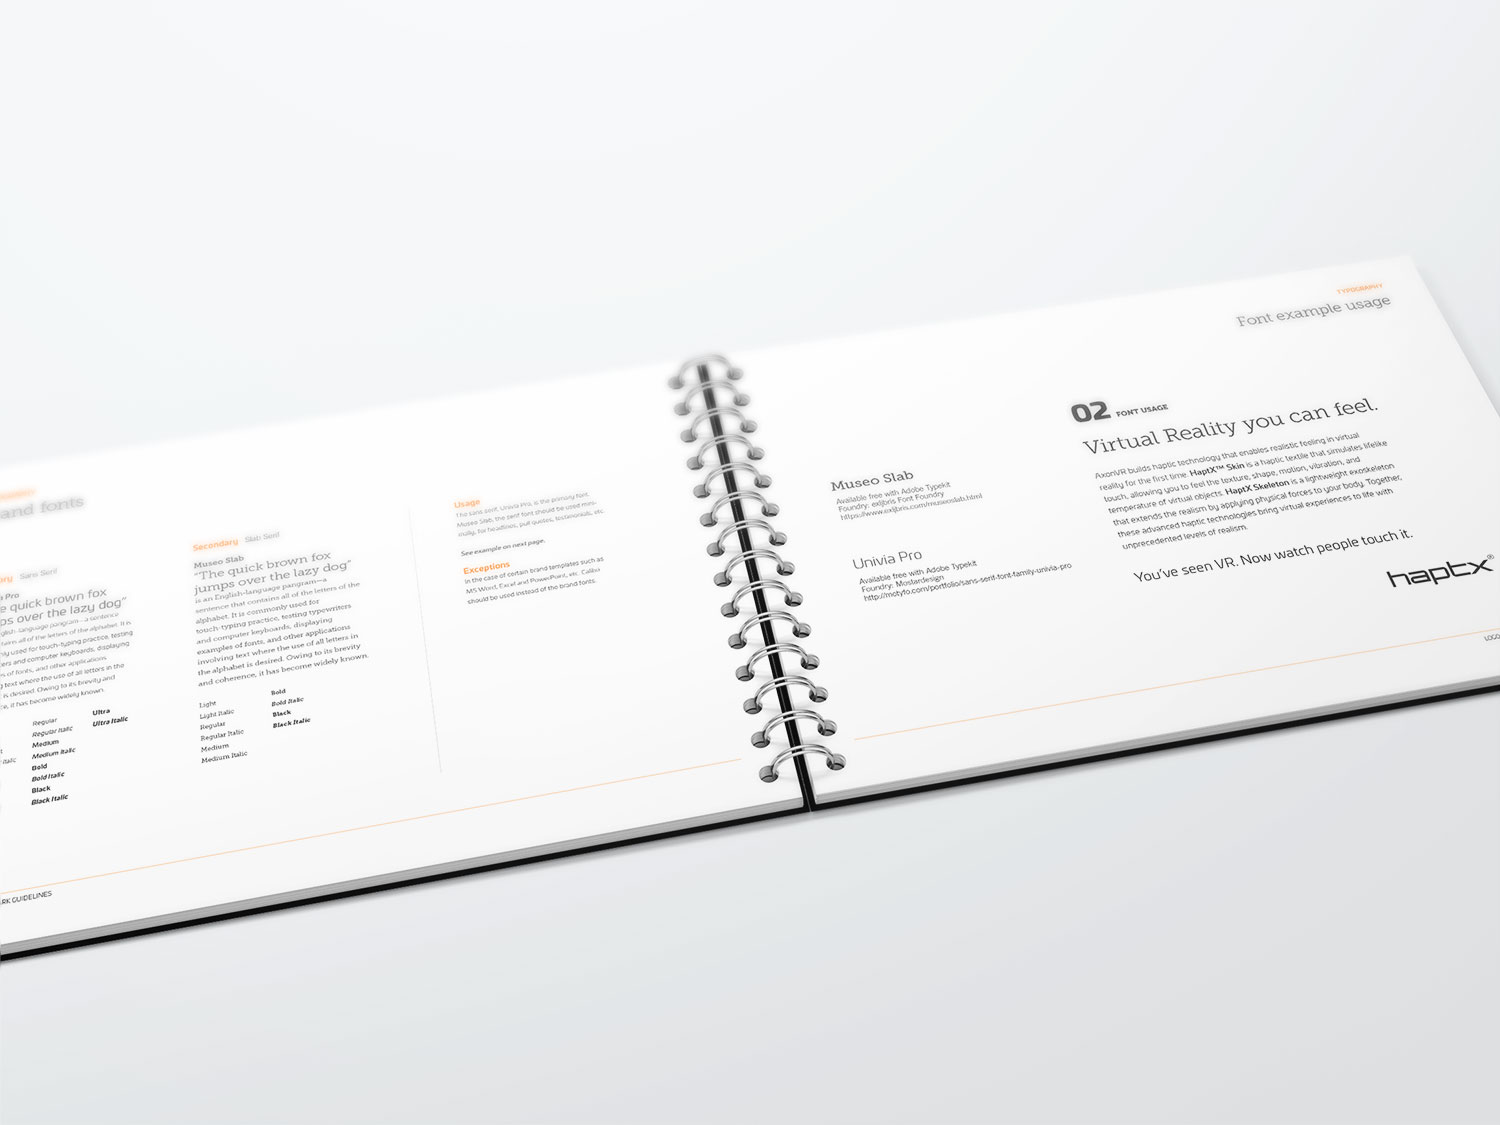 A HaptX book that has been opened and laid out on a white table